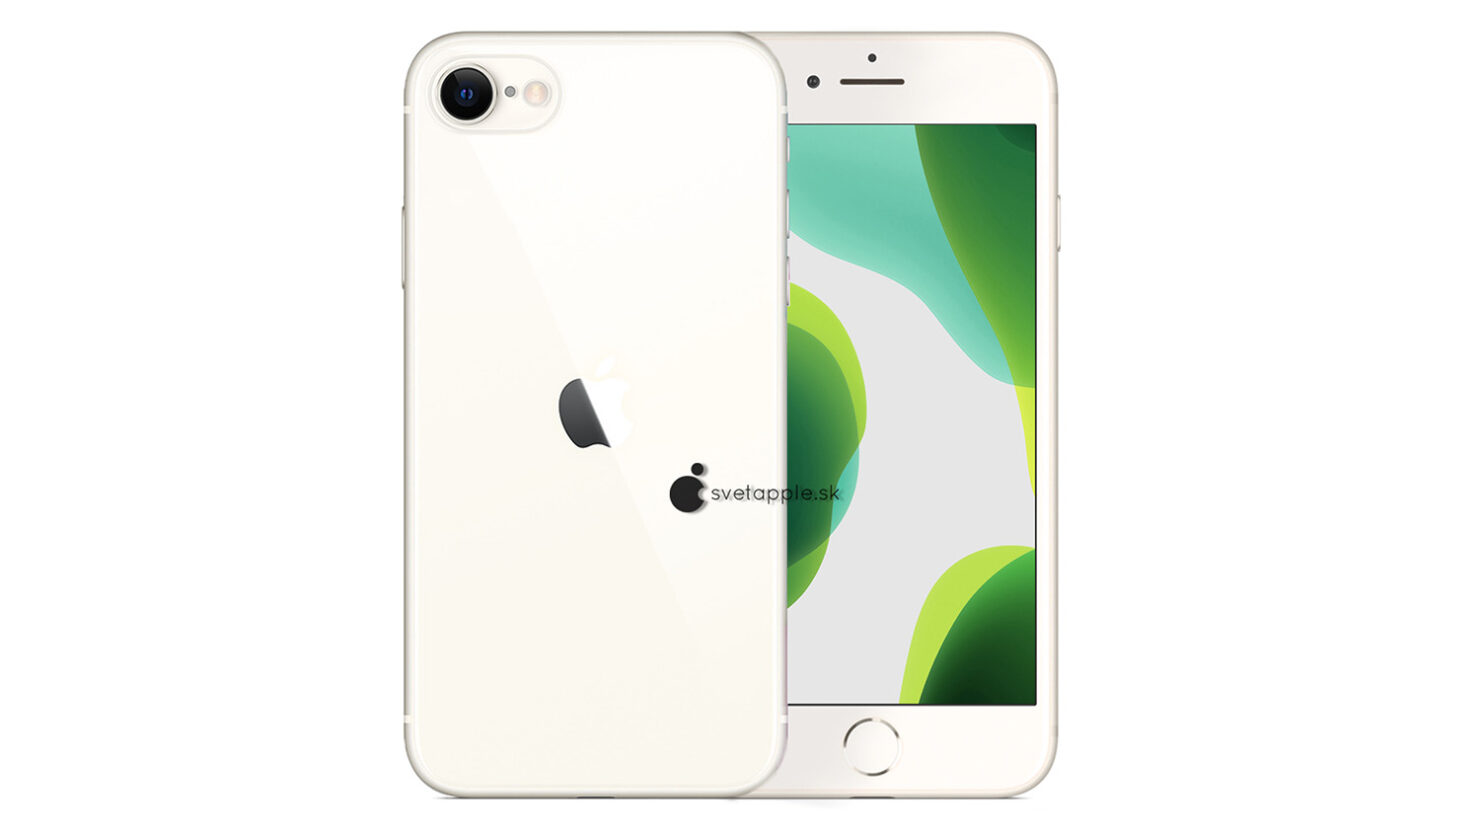 iphone-se-2-renders-color-options-and-preliminary-specifications-5